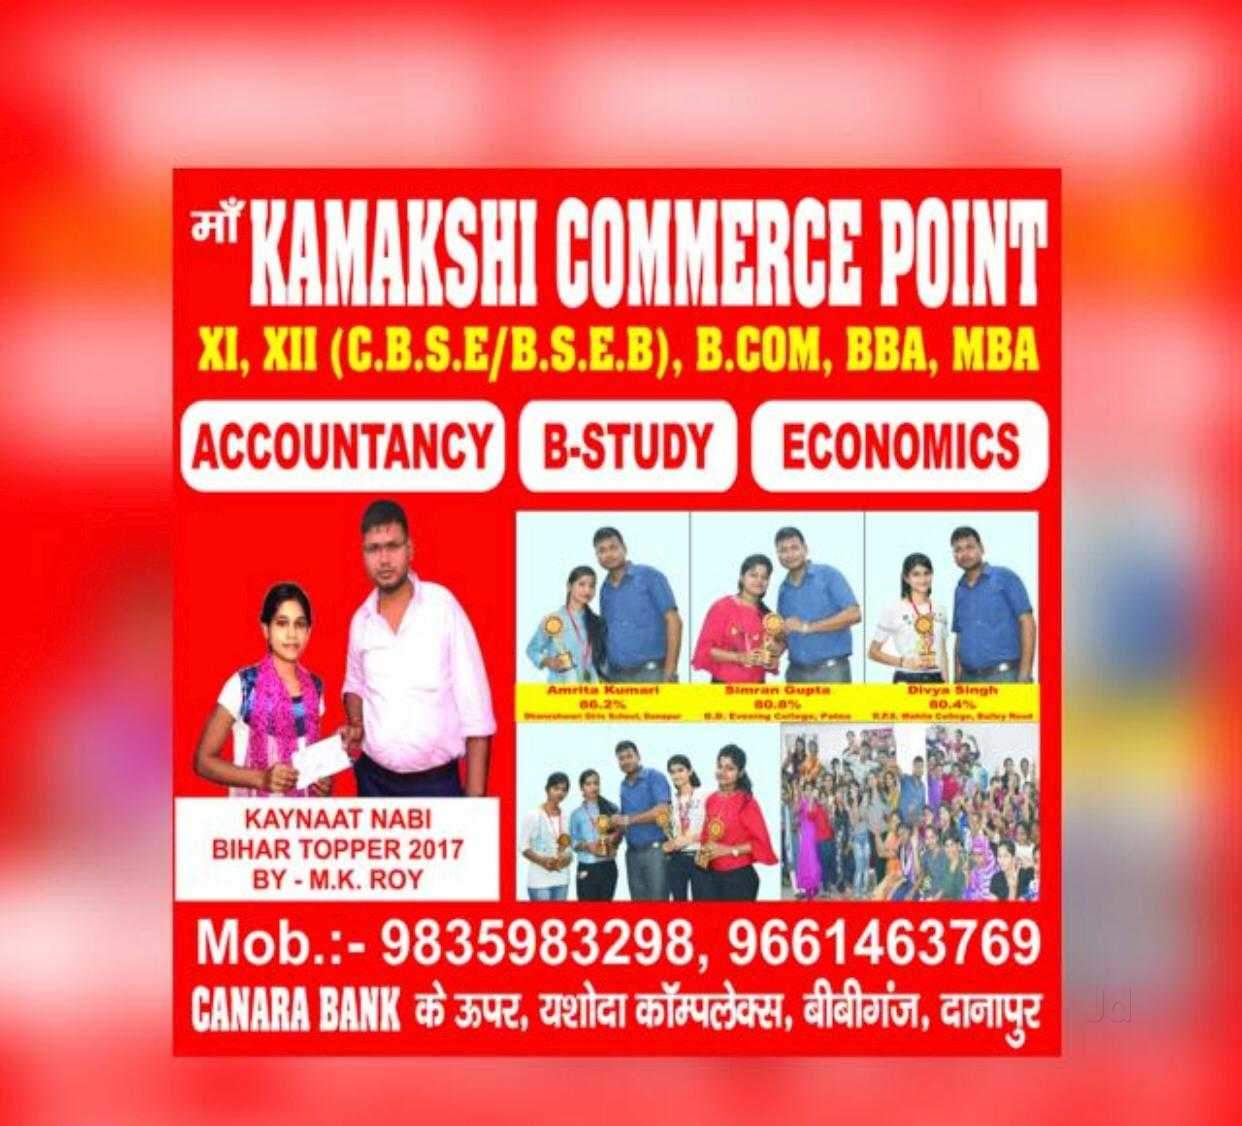 Maa Kamakshi Commerce Point